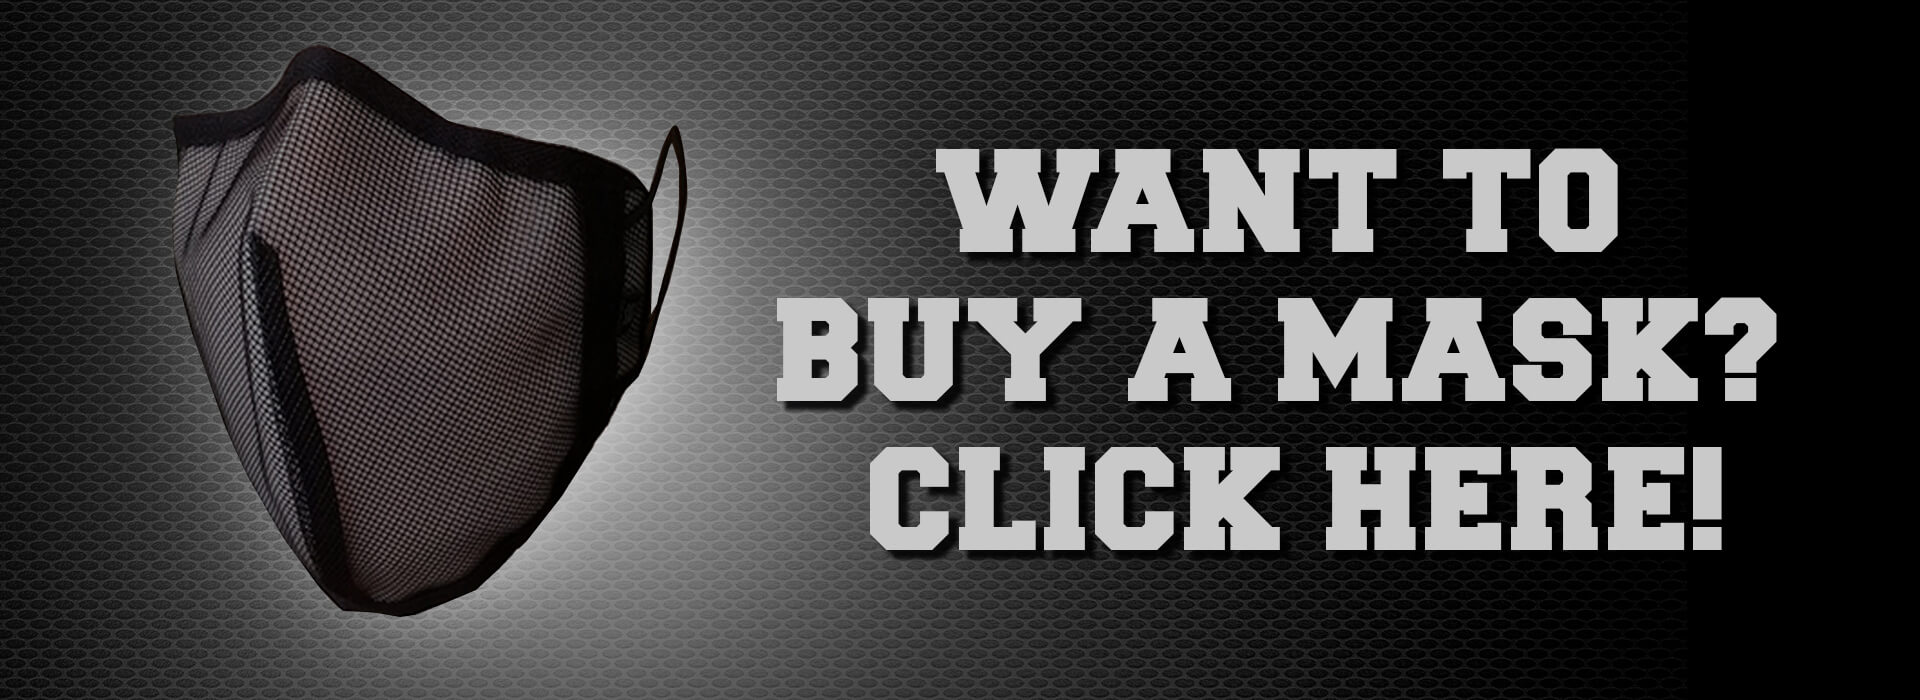 Want to buy a mask? Click here!